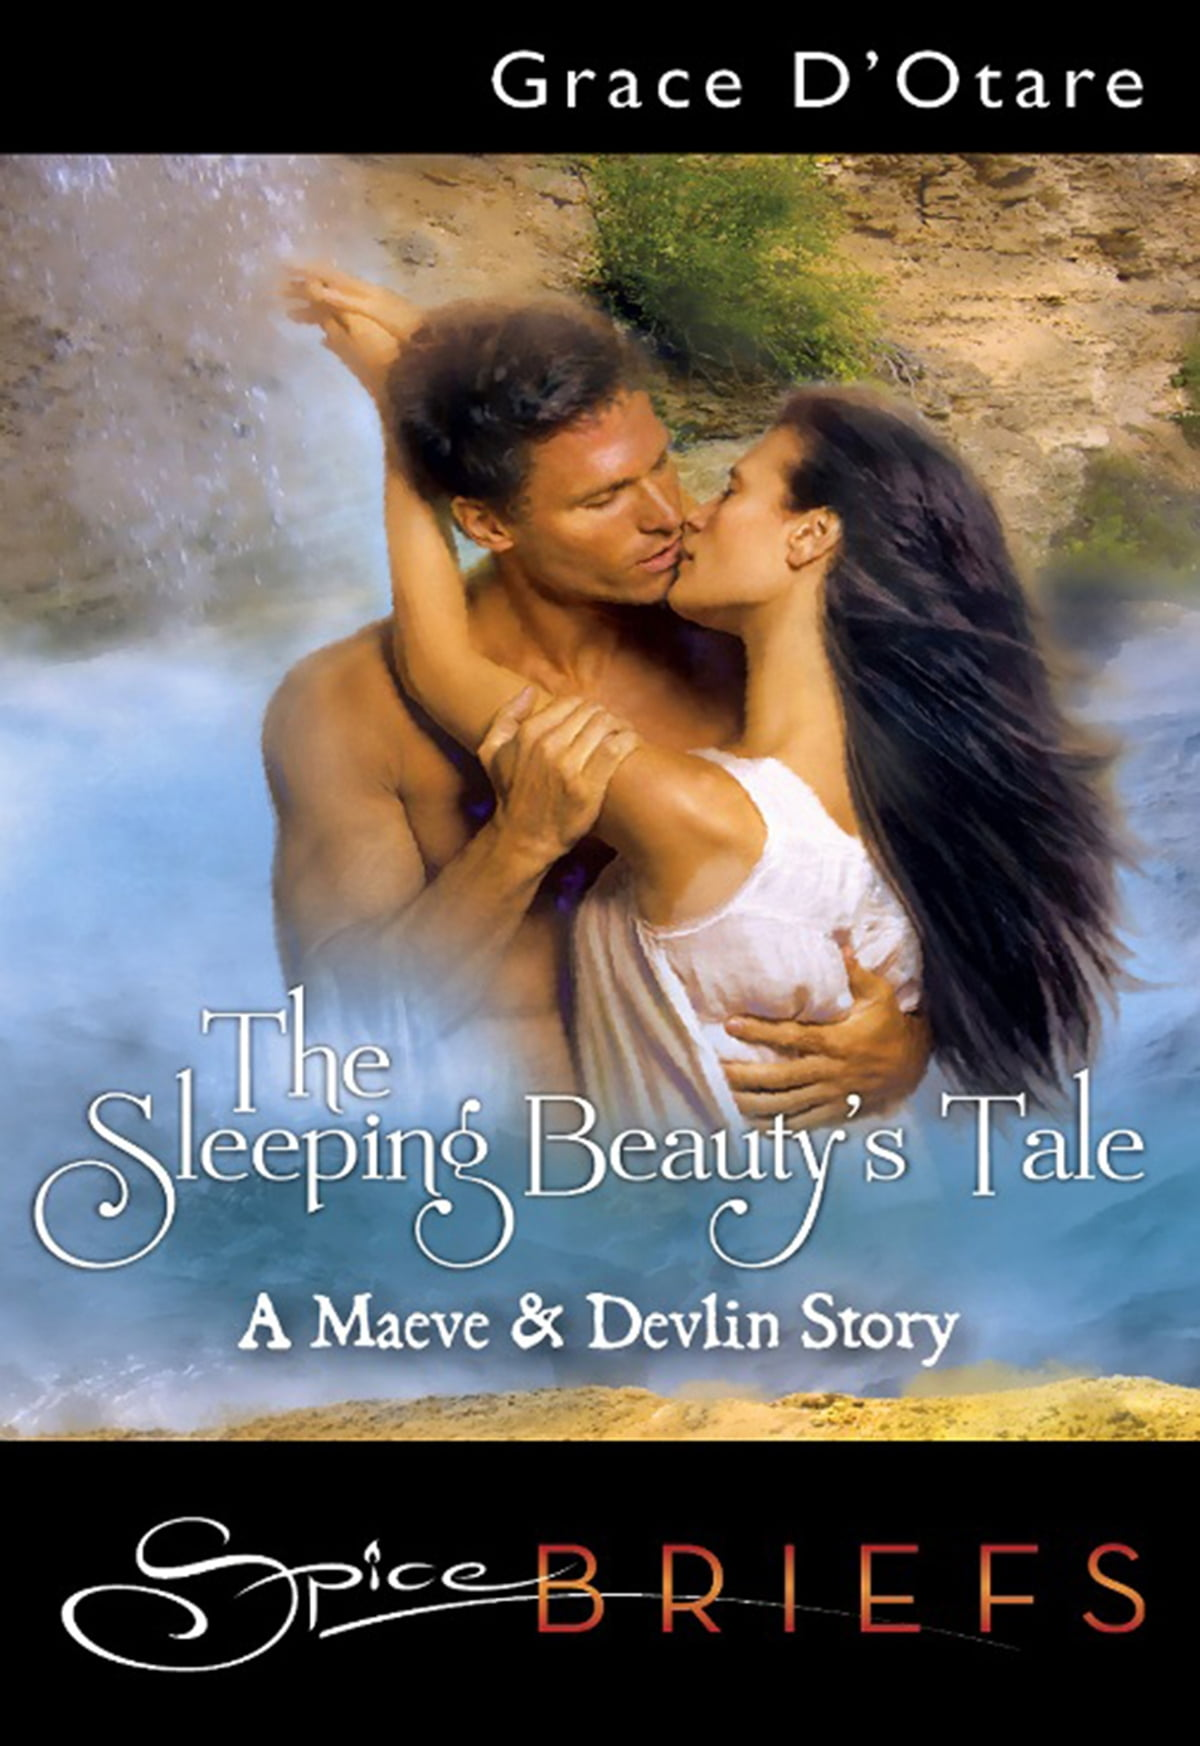 The Sleeping Beautys Tale (Mills & Boon Spice Briefs)